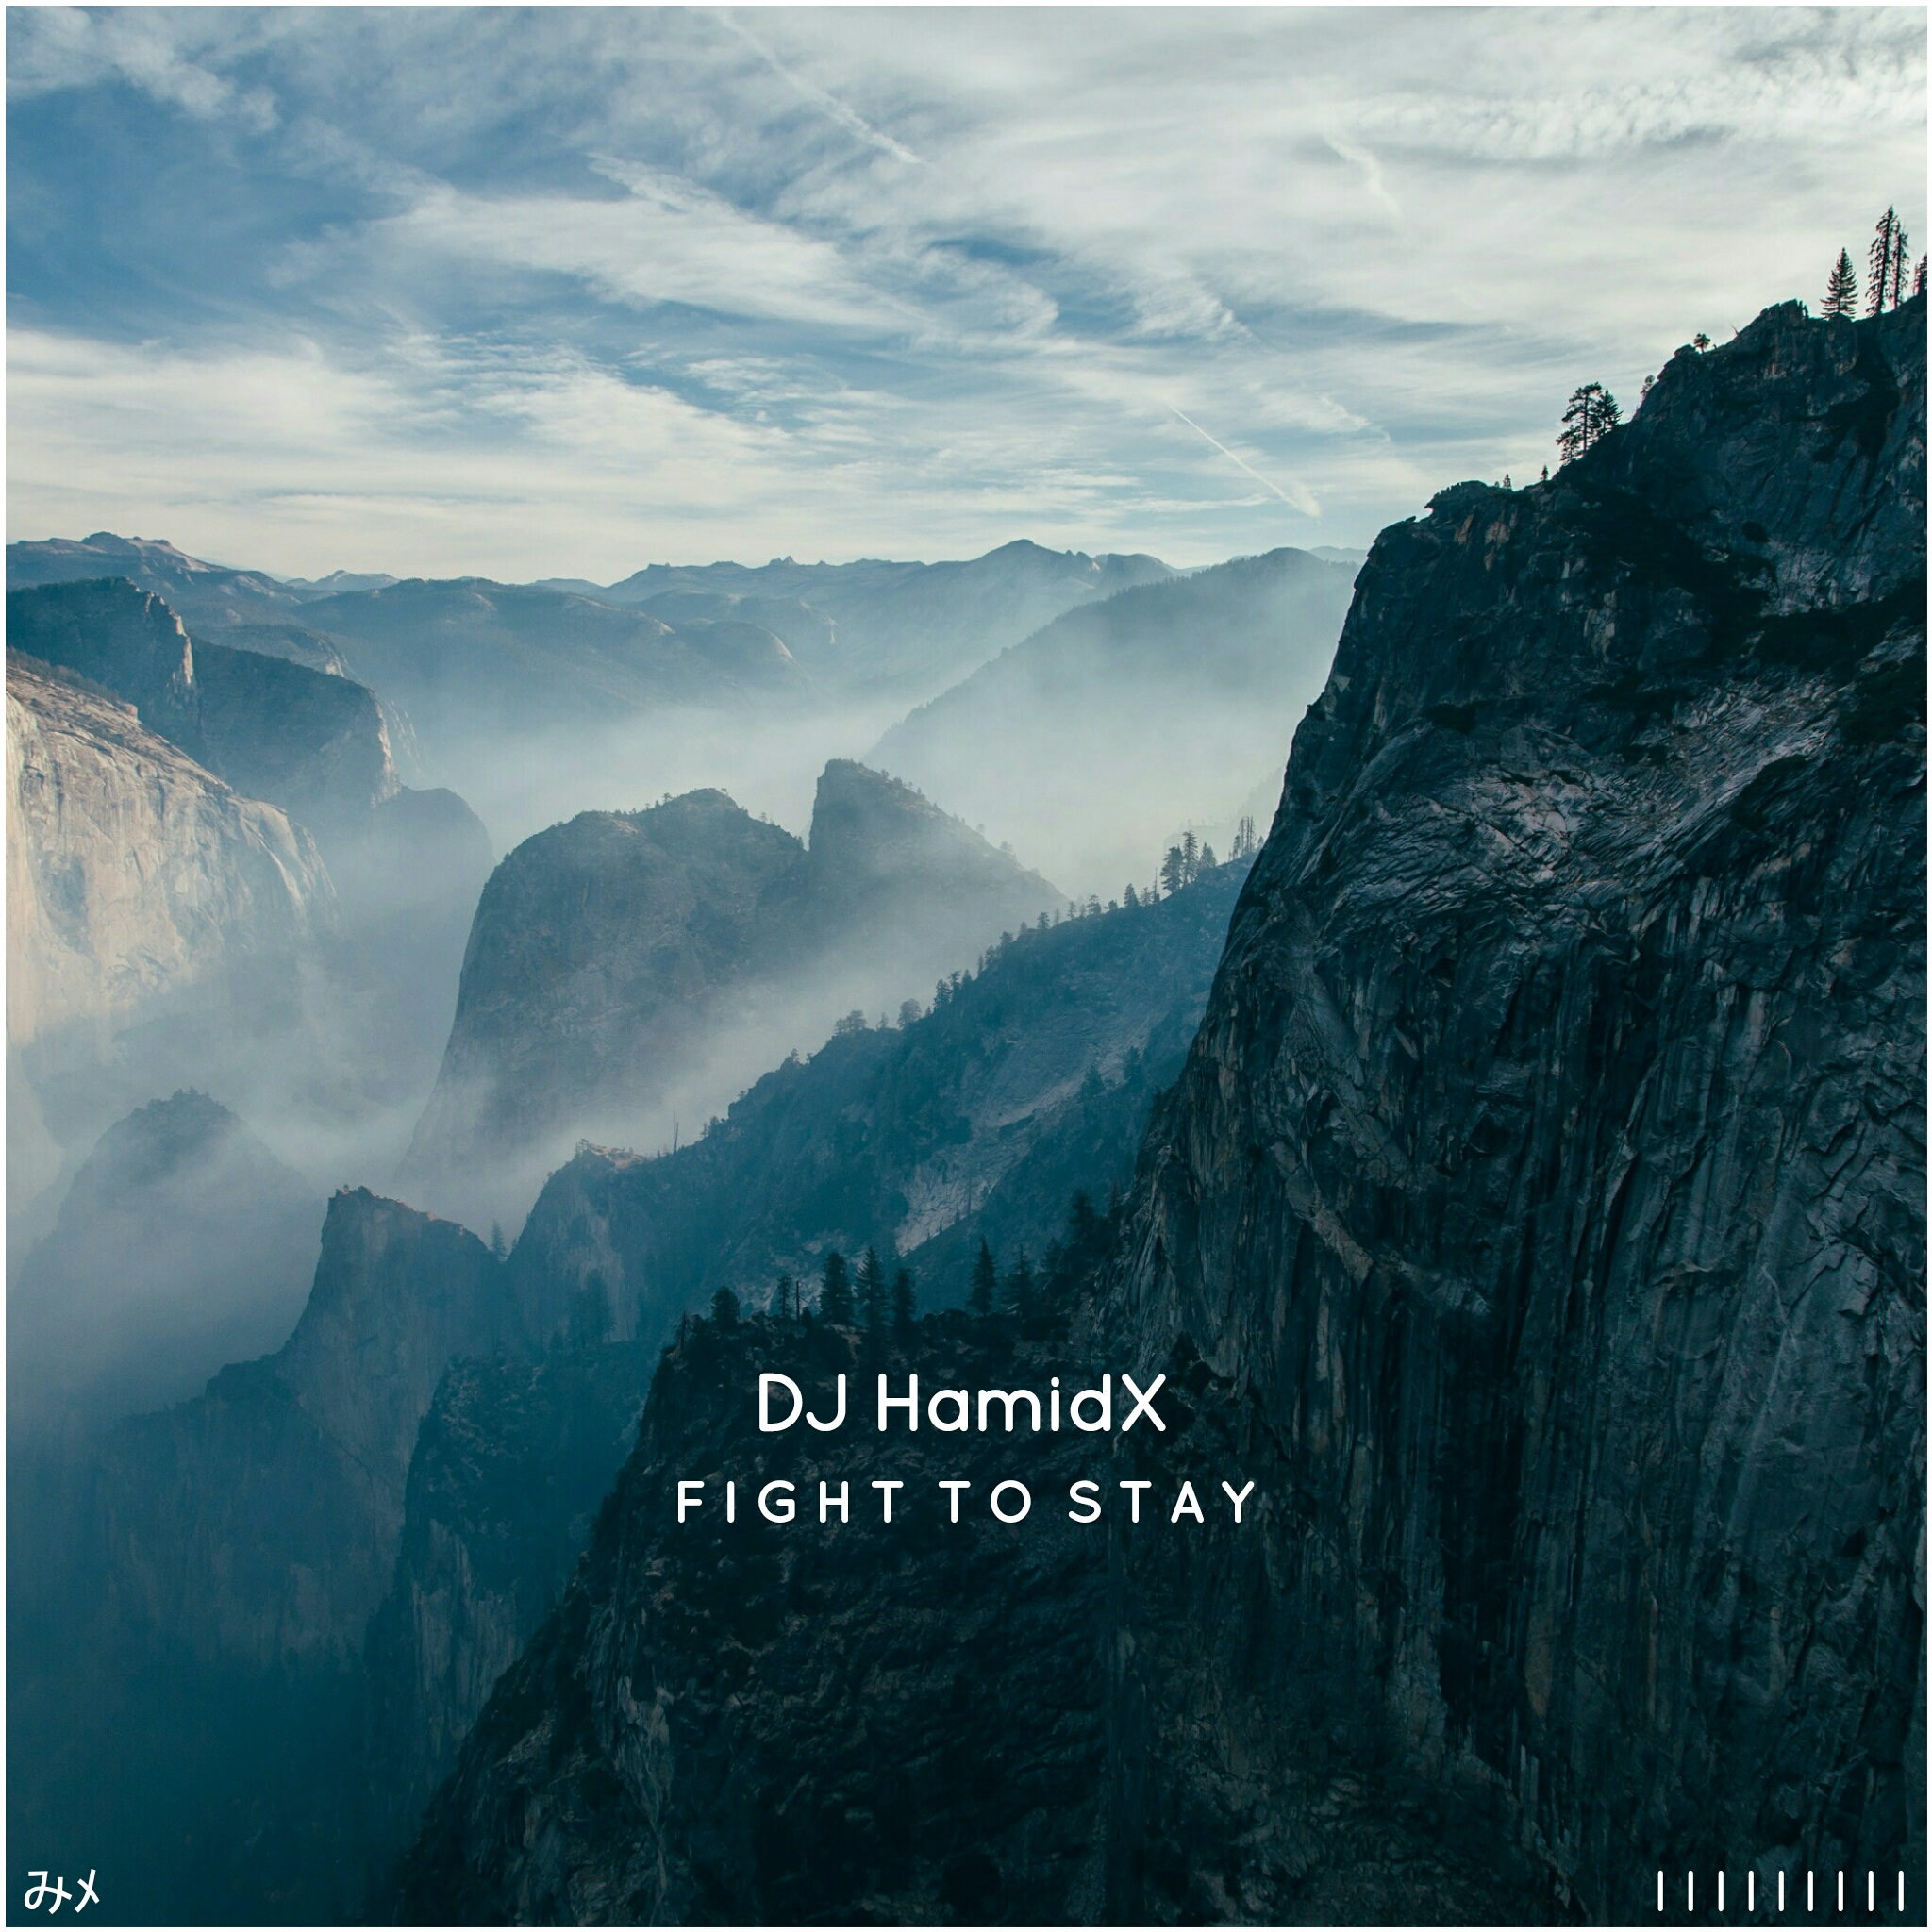 Fight To Stay